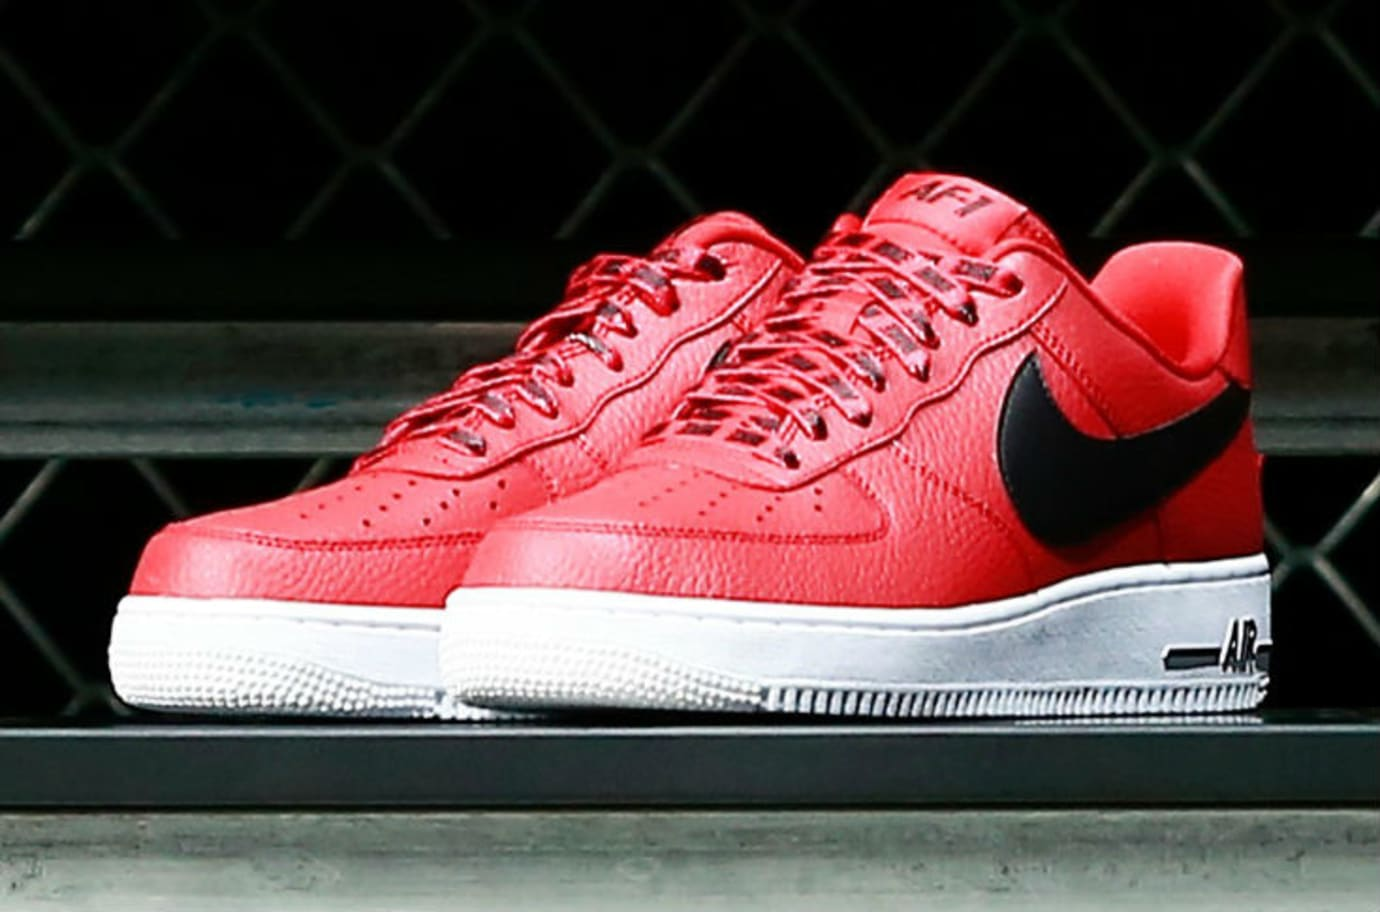 Nike Air Force 1 Low Statement Game NBA Logos Infrared